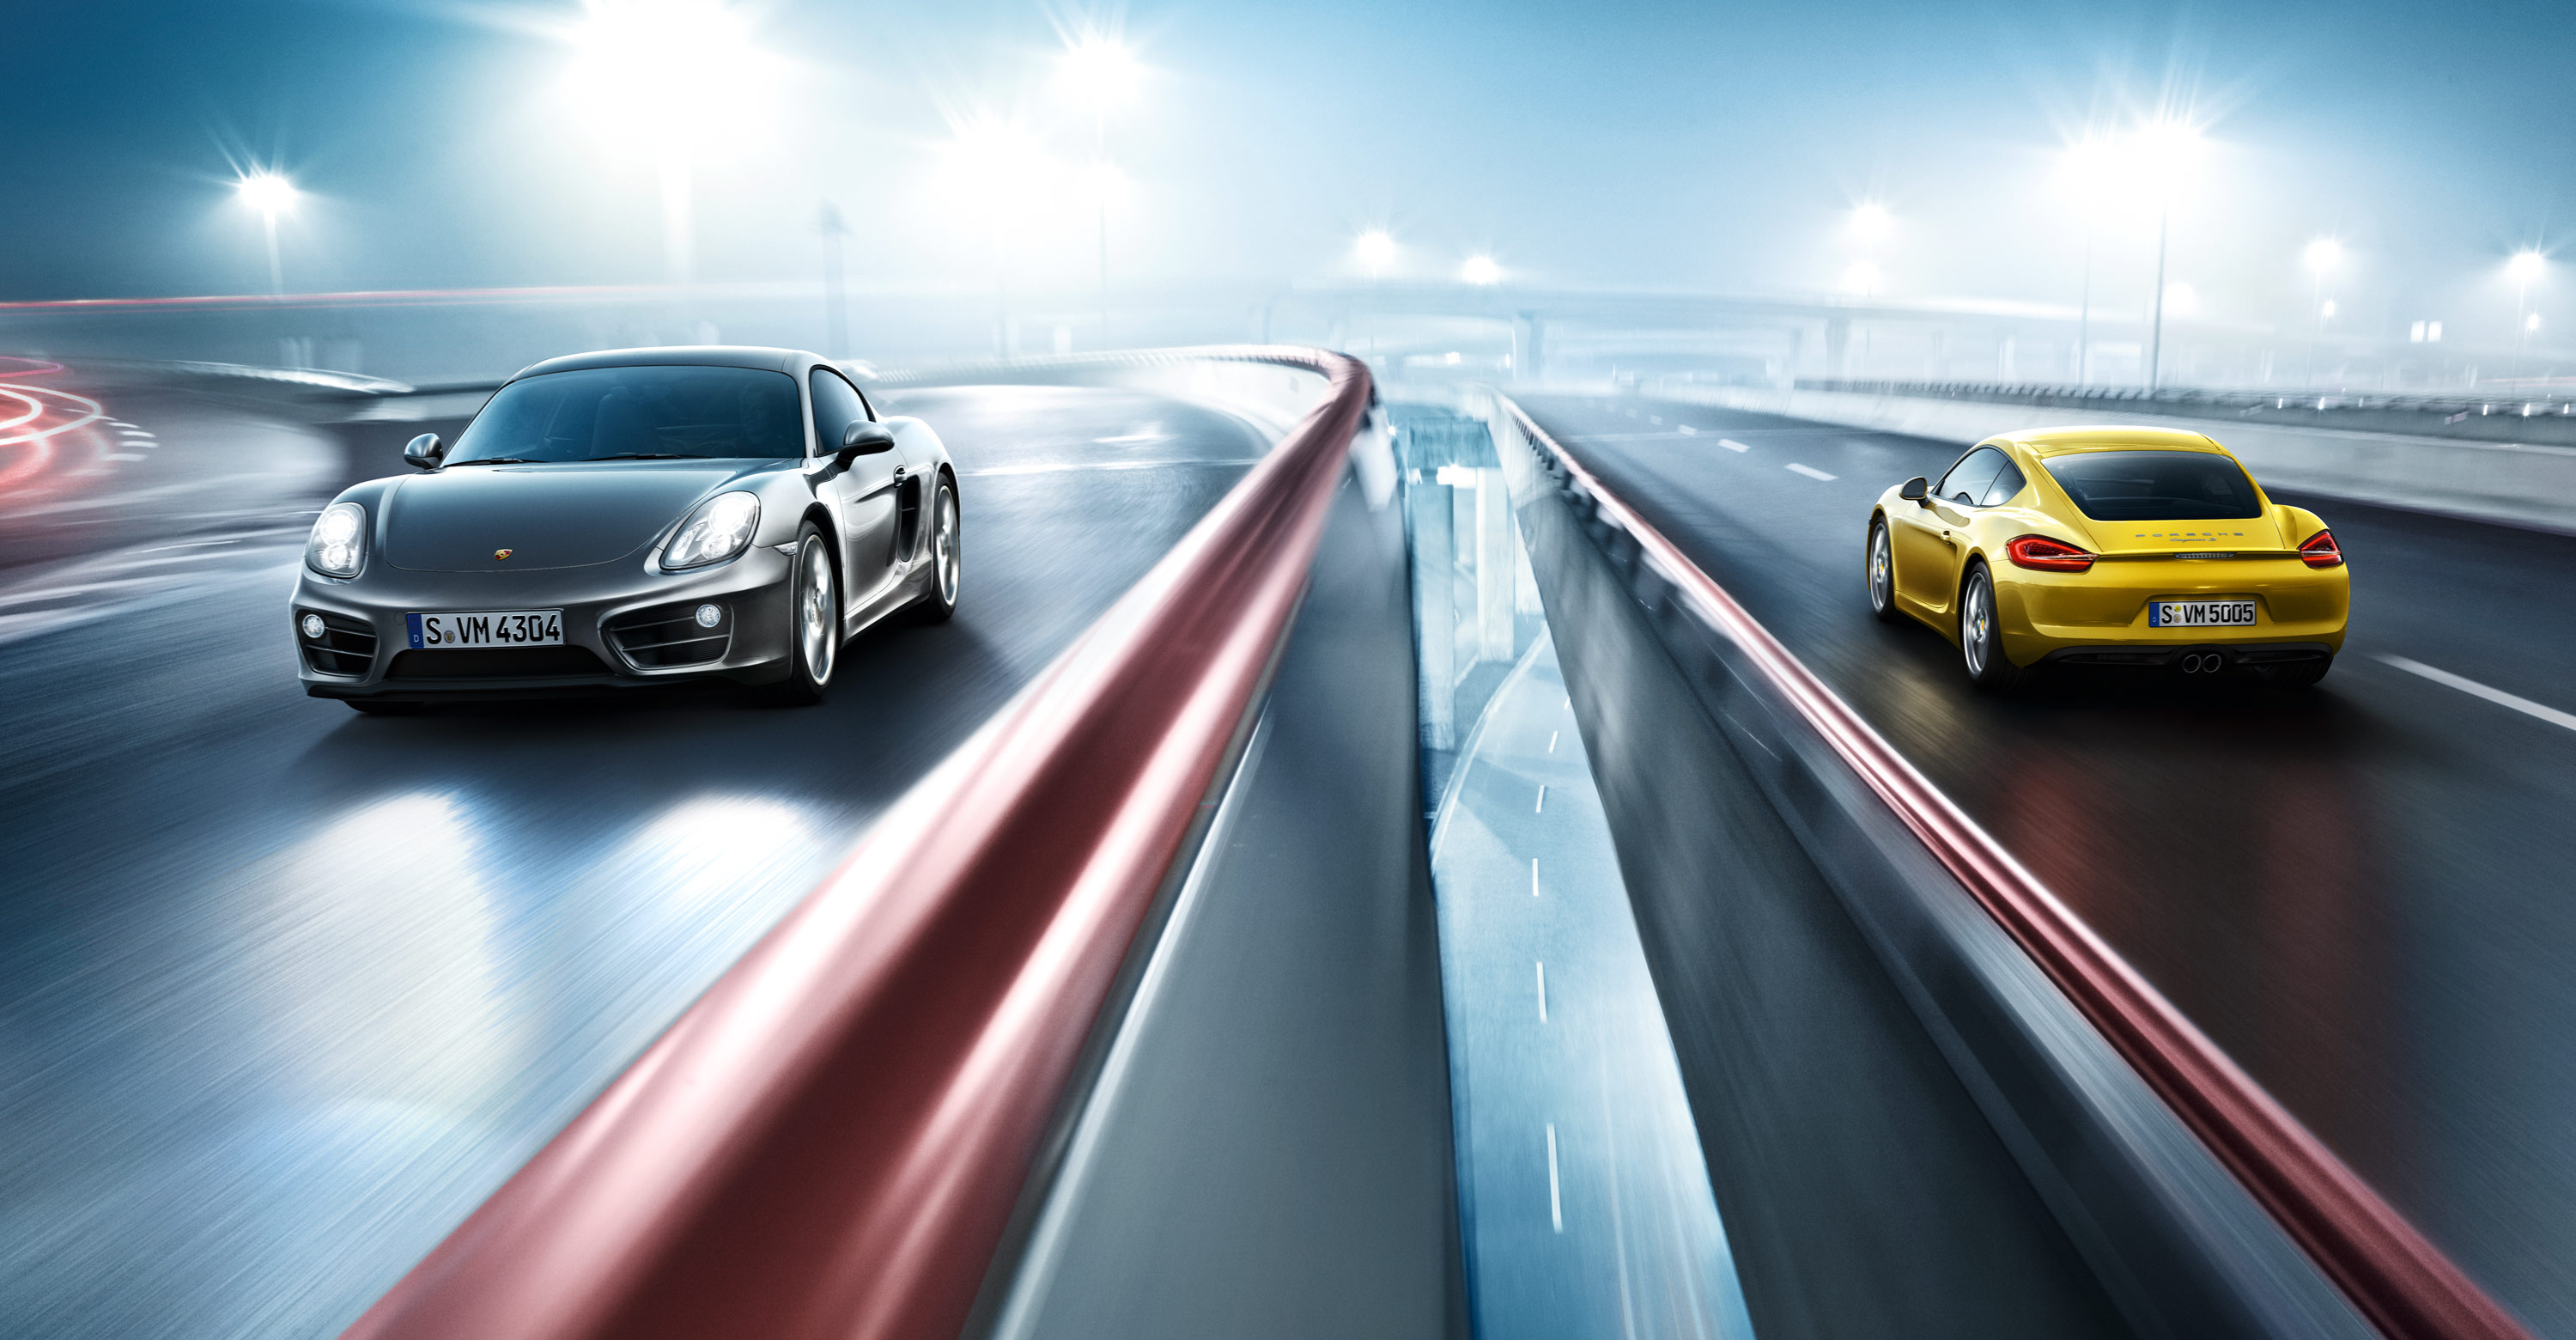 2013-porsche-cayman-wallpaper_16